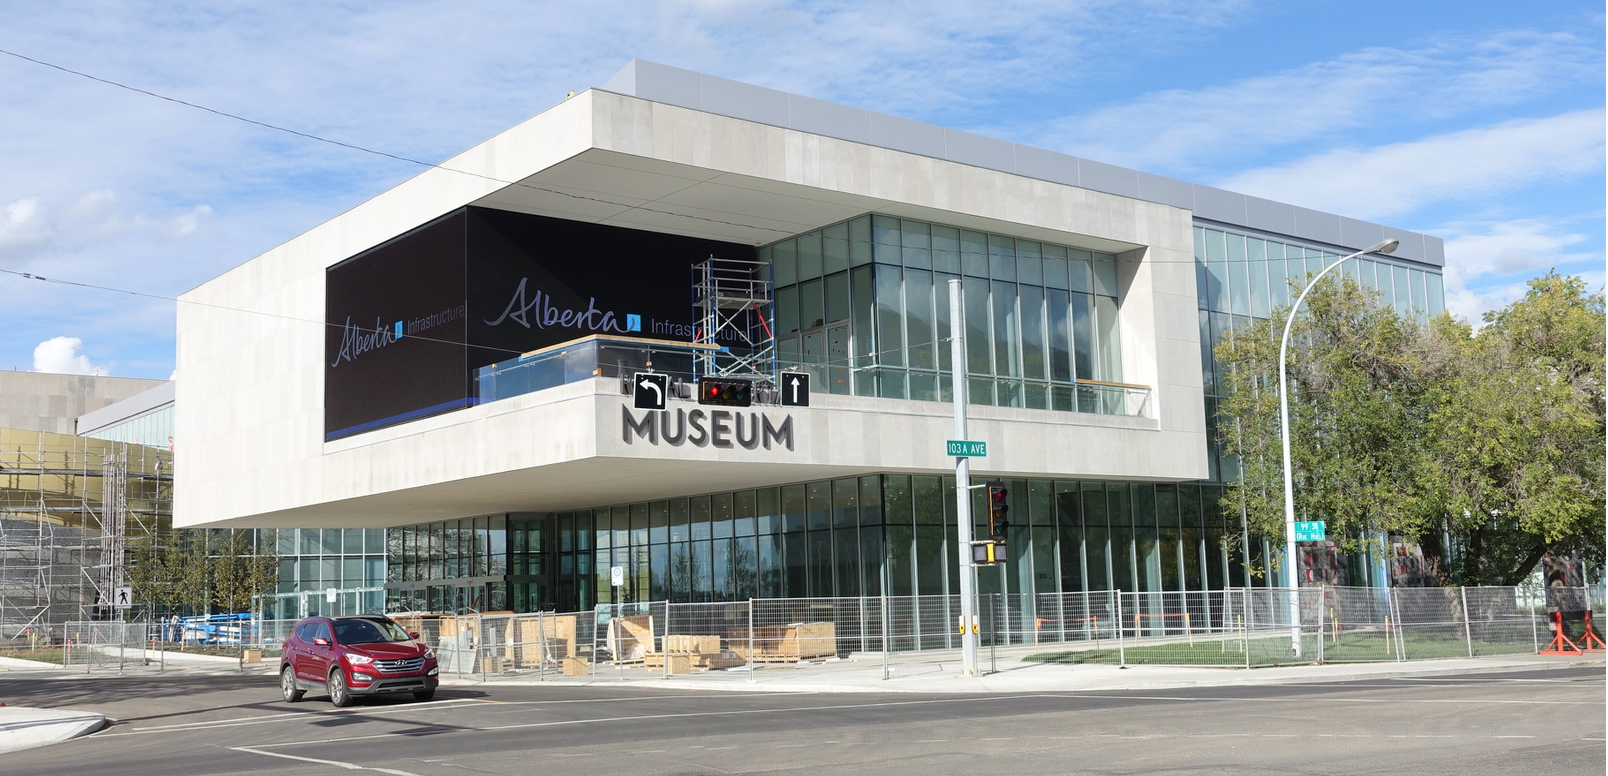 The new Alberta Provincial Museum is current under construction in downtown Edmonton. It is an attractive contemporary box design.